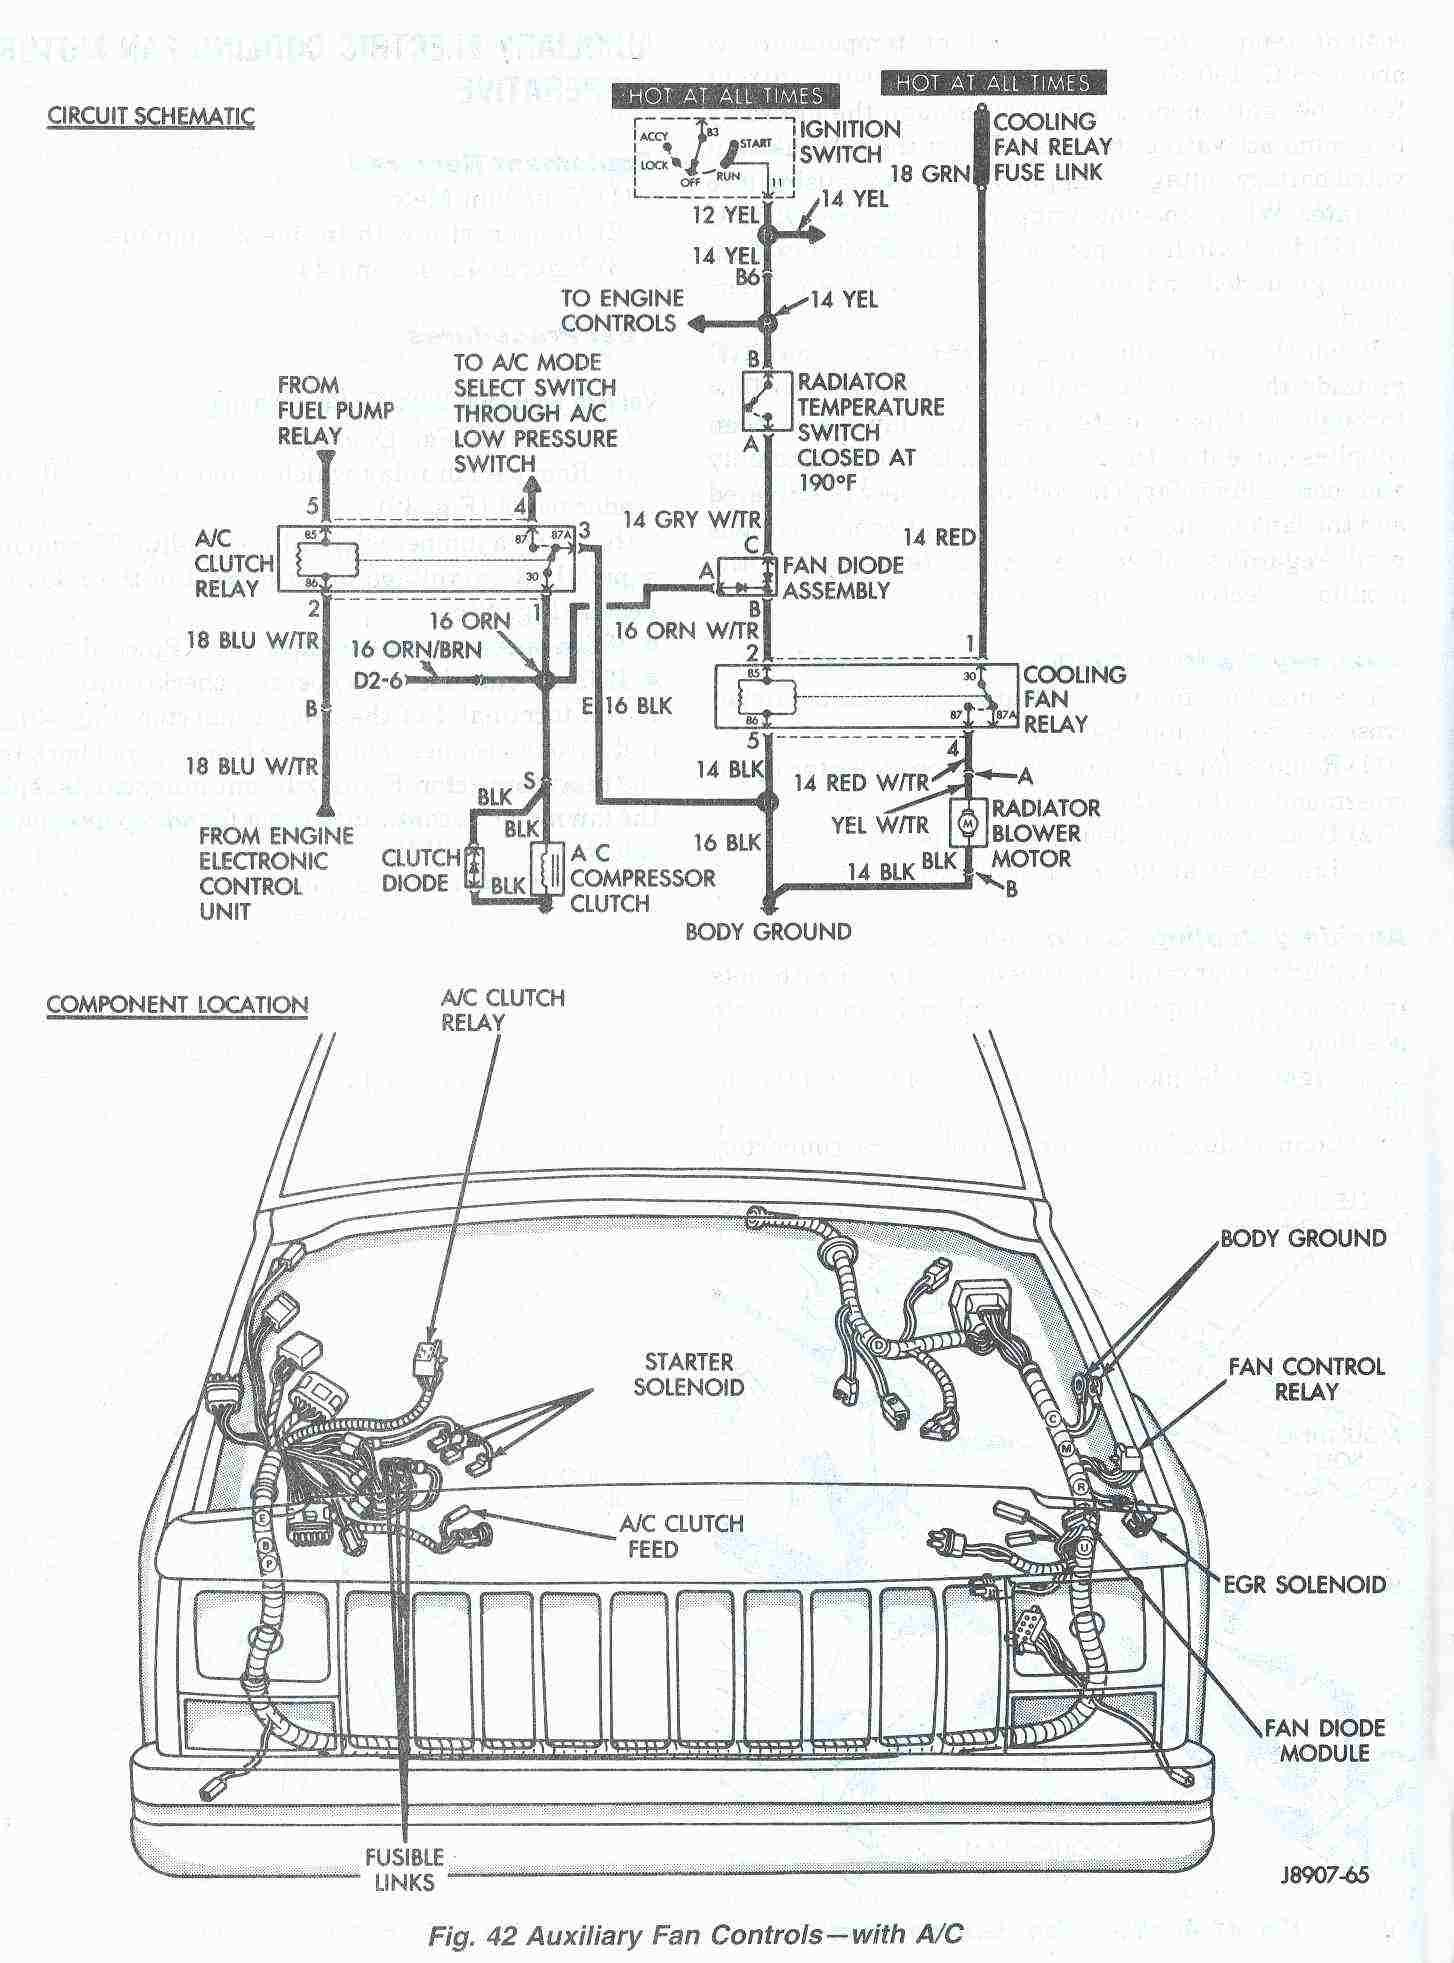 2007 jeep grand cherokee cooling fan wiring diagram wiring diagram 2007 Honda Cr-V Wiring Diagram 2007 jeep starter wiring wiring library 1995 grand cherokee wiring diagram 2007 jeep grand cherokee cooling fan wiring diagram